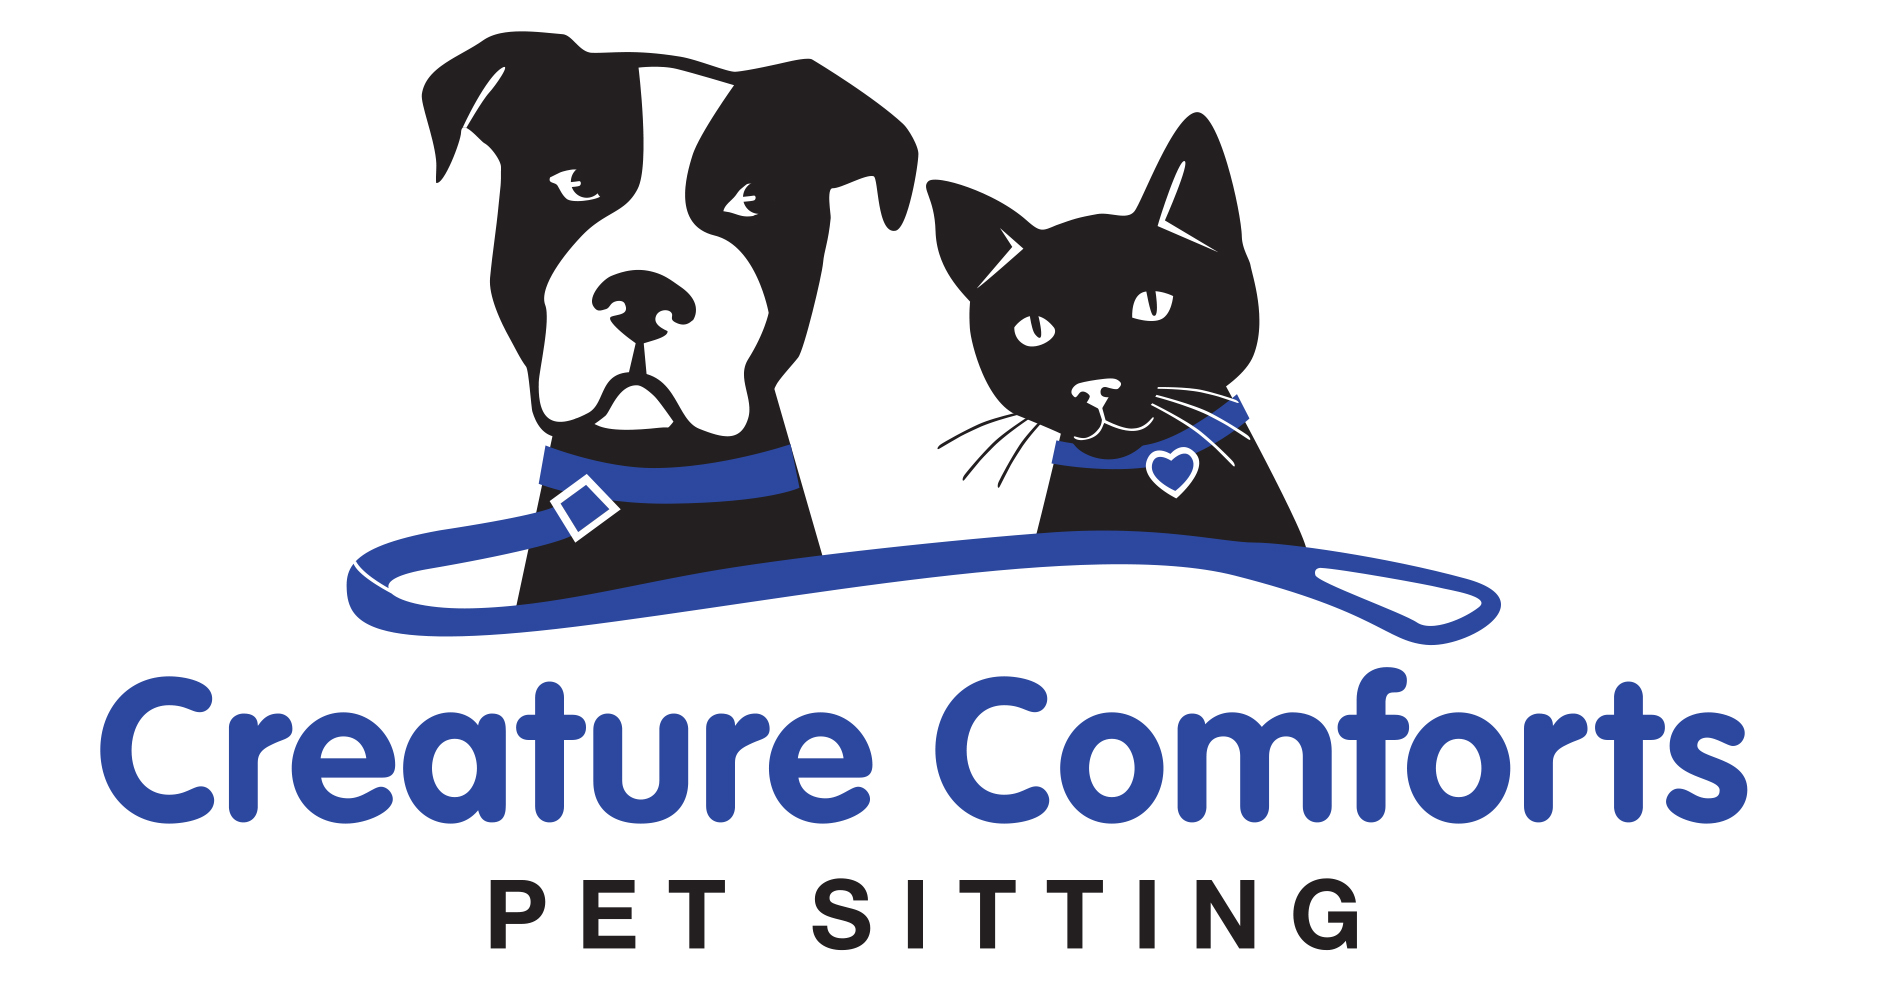 Creature Comforts Pet Sitting